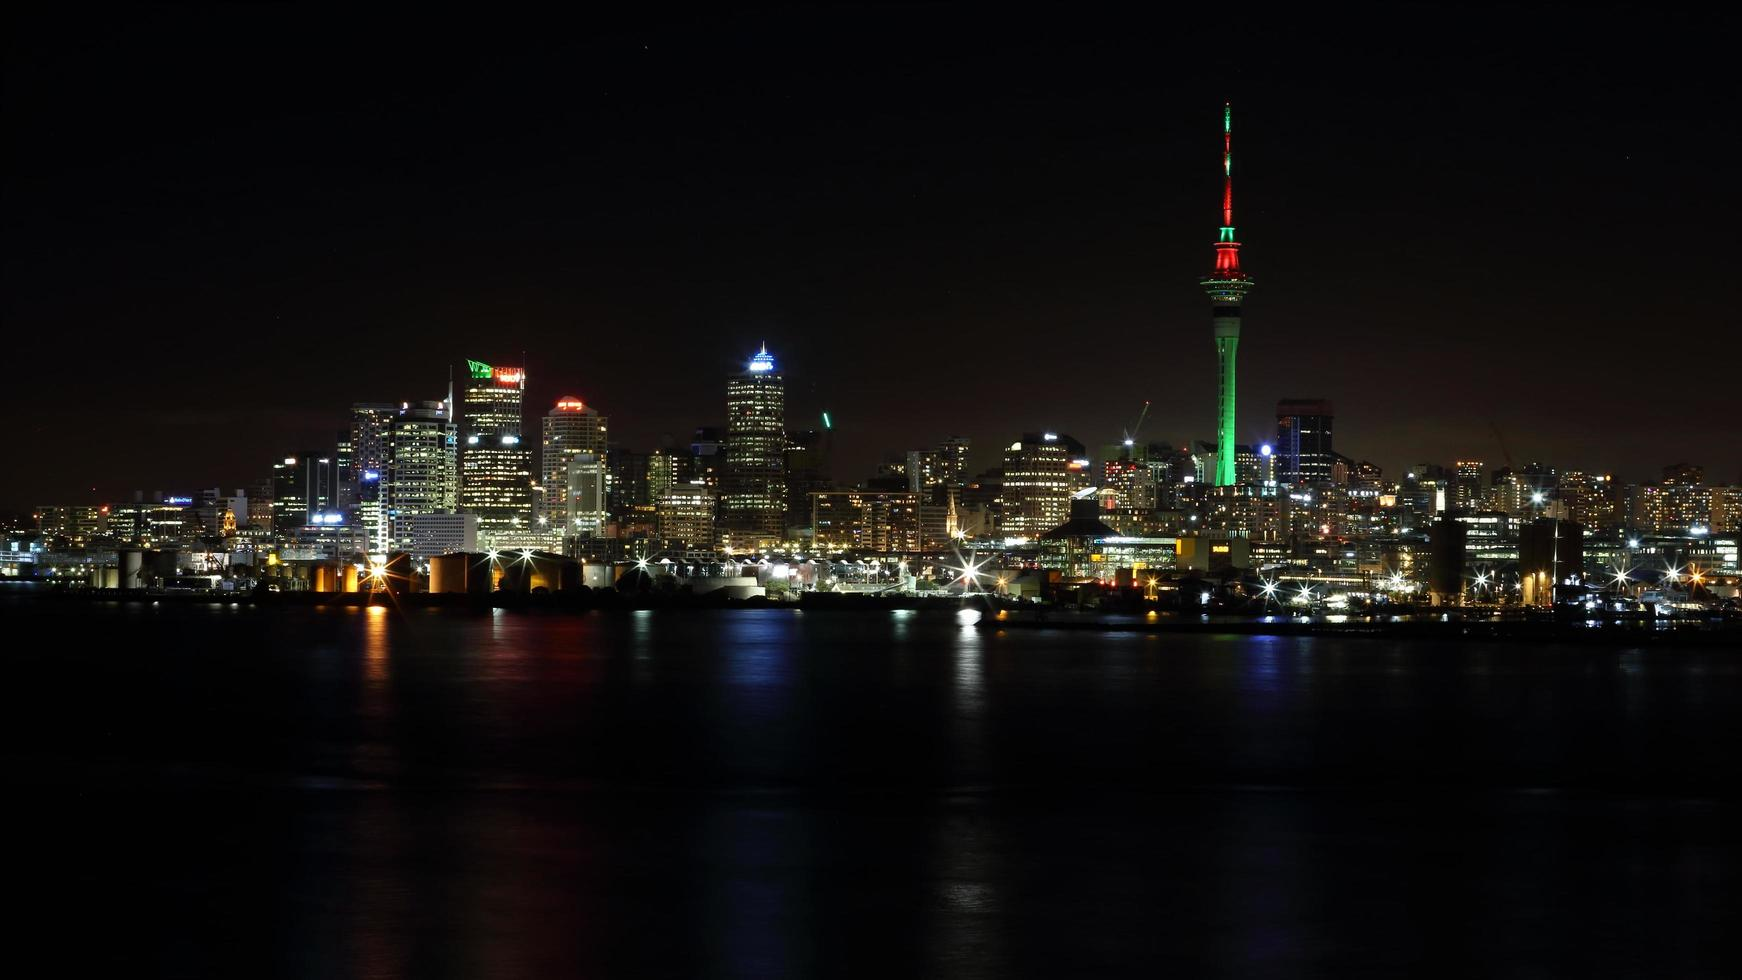 High rise buildings during nighttime photo